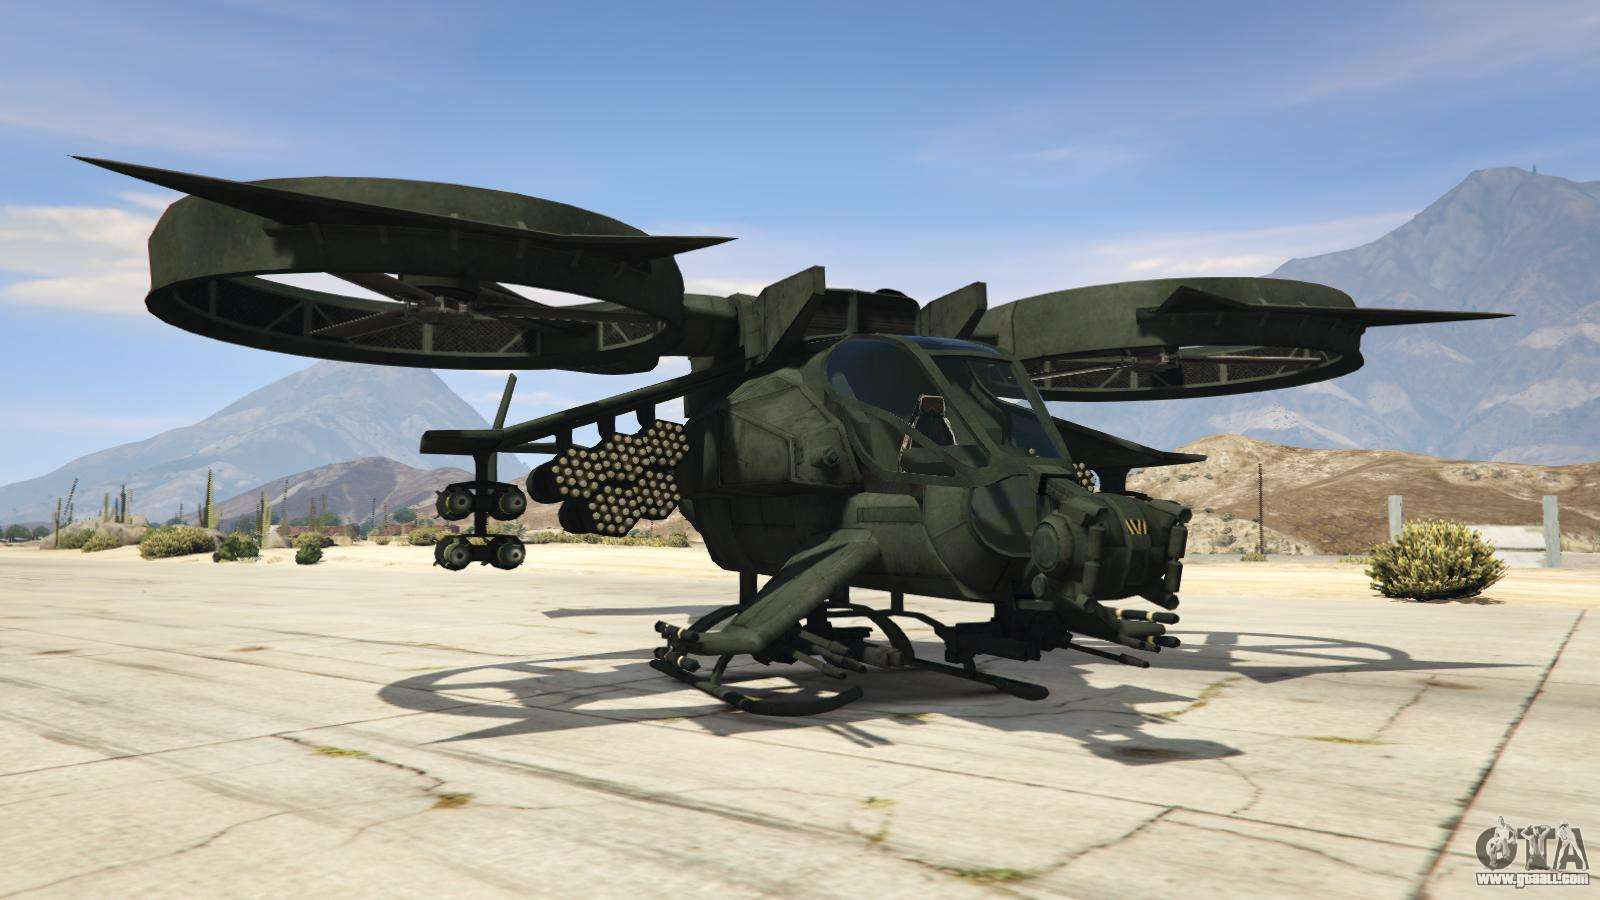 rc helicopters with 75769 At 99 Scorpion on Who You Gonna Call further Radioshack Hdmi To  posite Converter in addition Product besides 25381 Na Grove Street Napal Ballas besides Rcedition.